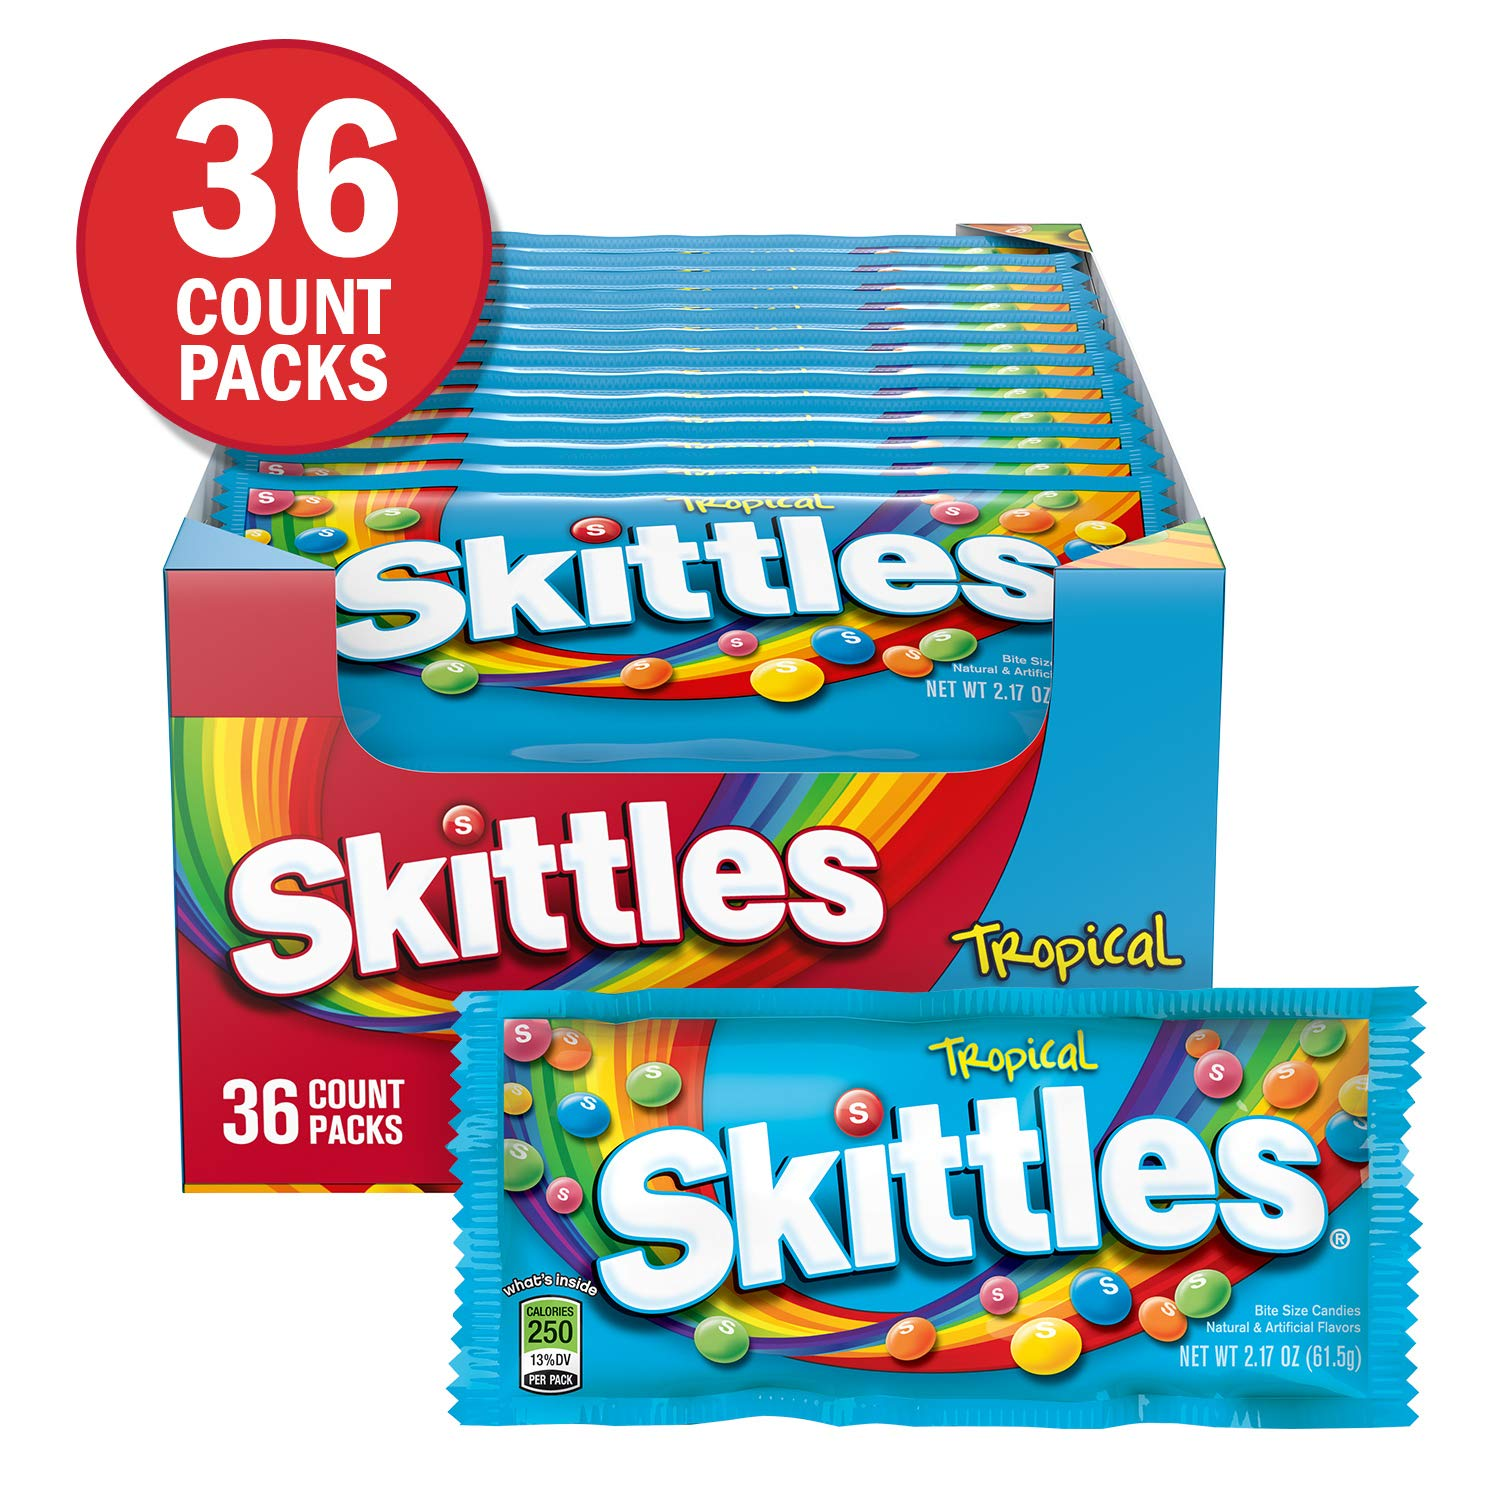 Skittles Tropical Candy, 2.17 ounce (36 Single Packs) by Skittles